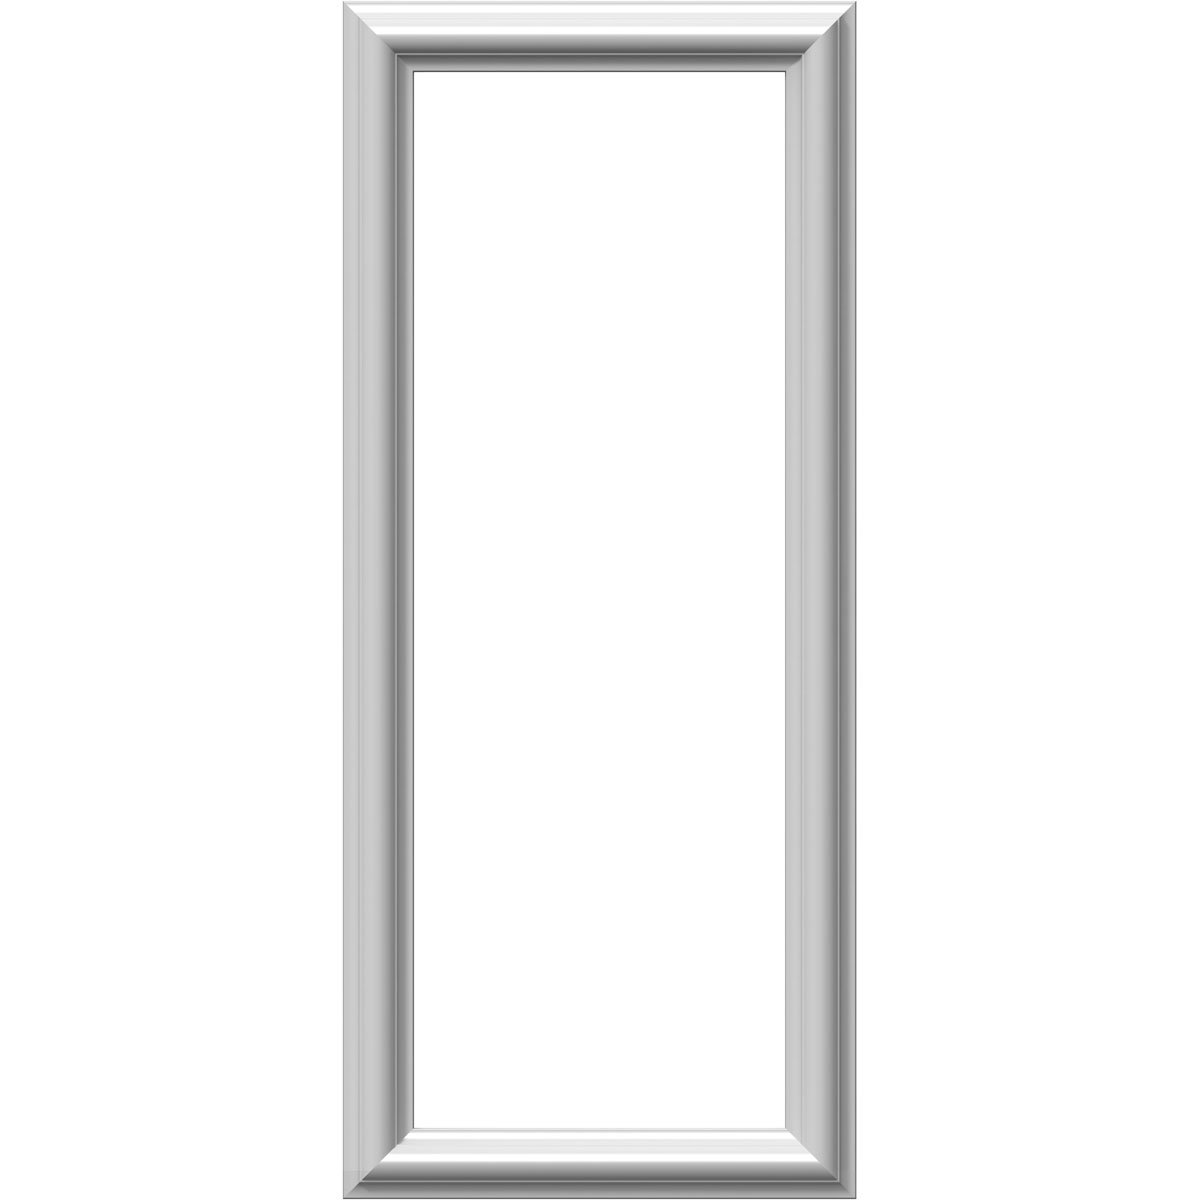 Ekena Millwork PNL12X28AS-01-CASE-4 12' W x 28' H x 1/2' P Ashford Molded Classic Wainscot Wall Panel (4-Pack), Factory Primed White, 4 Piece